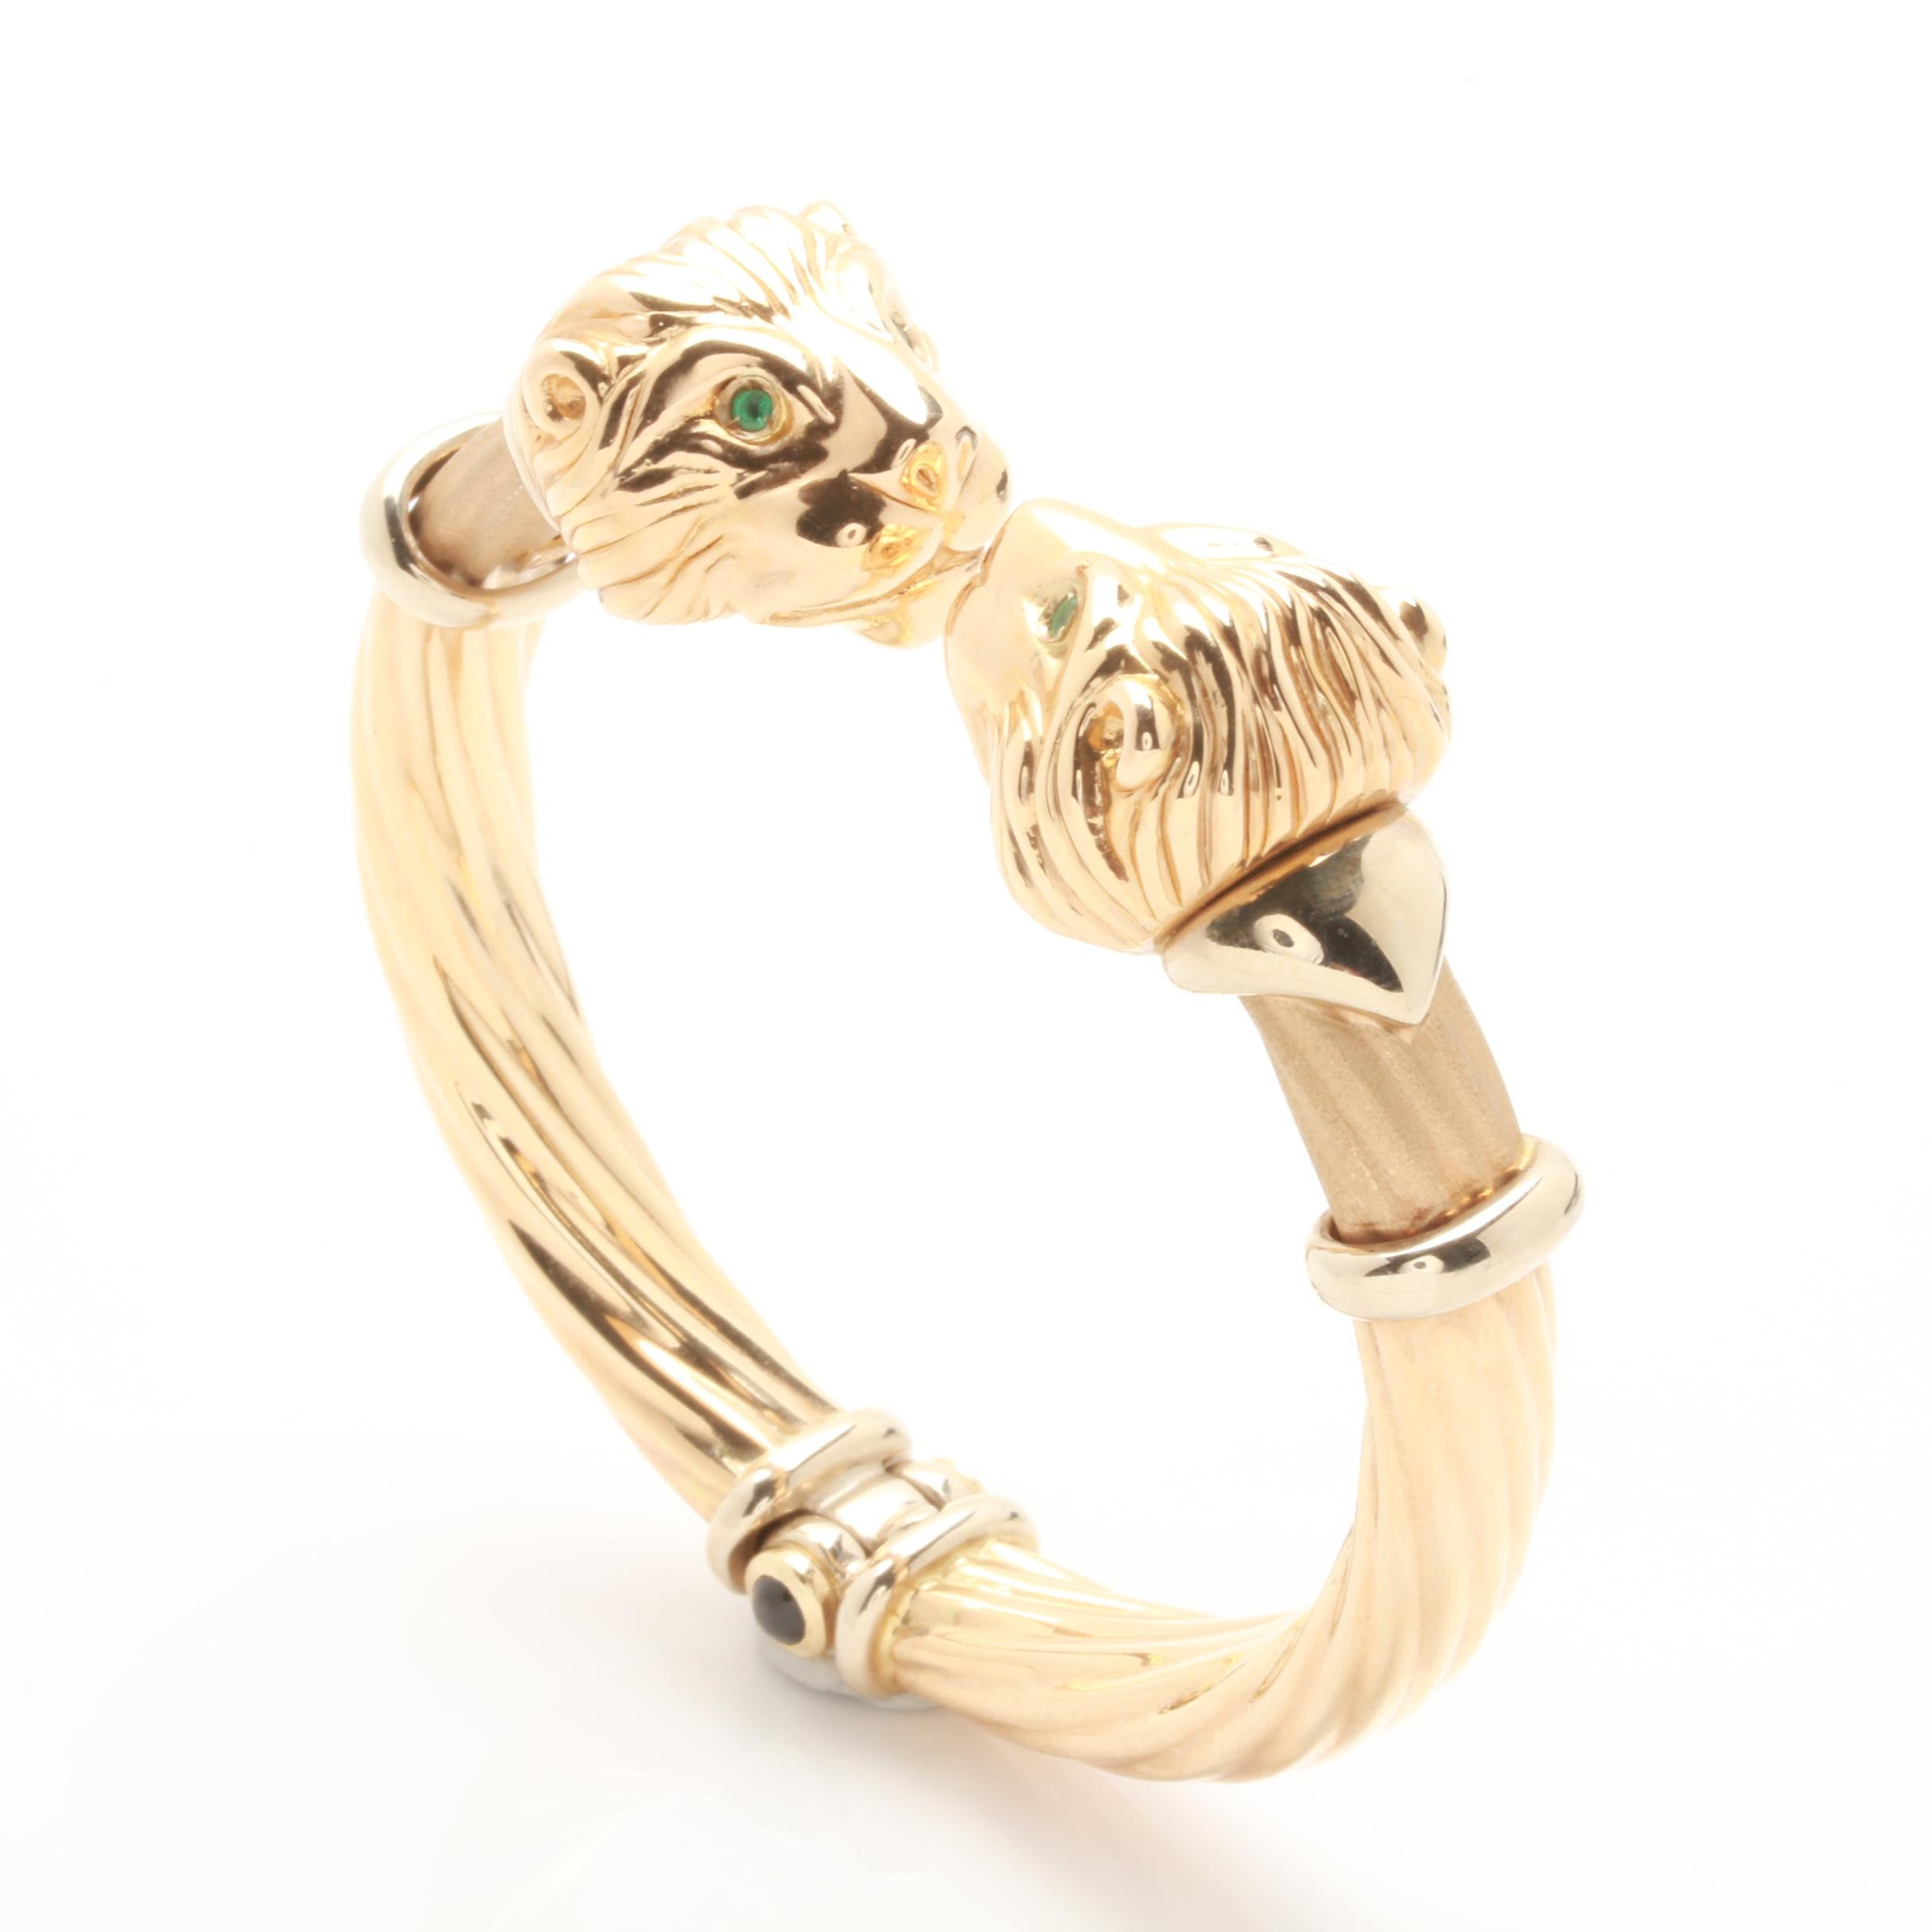 14K Yellow Gold Black Onyx and Emerald Lion's Head Cuff